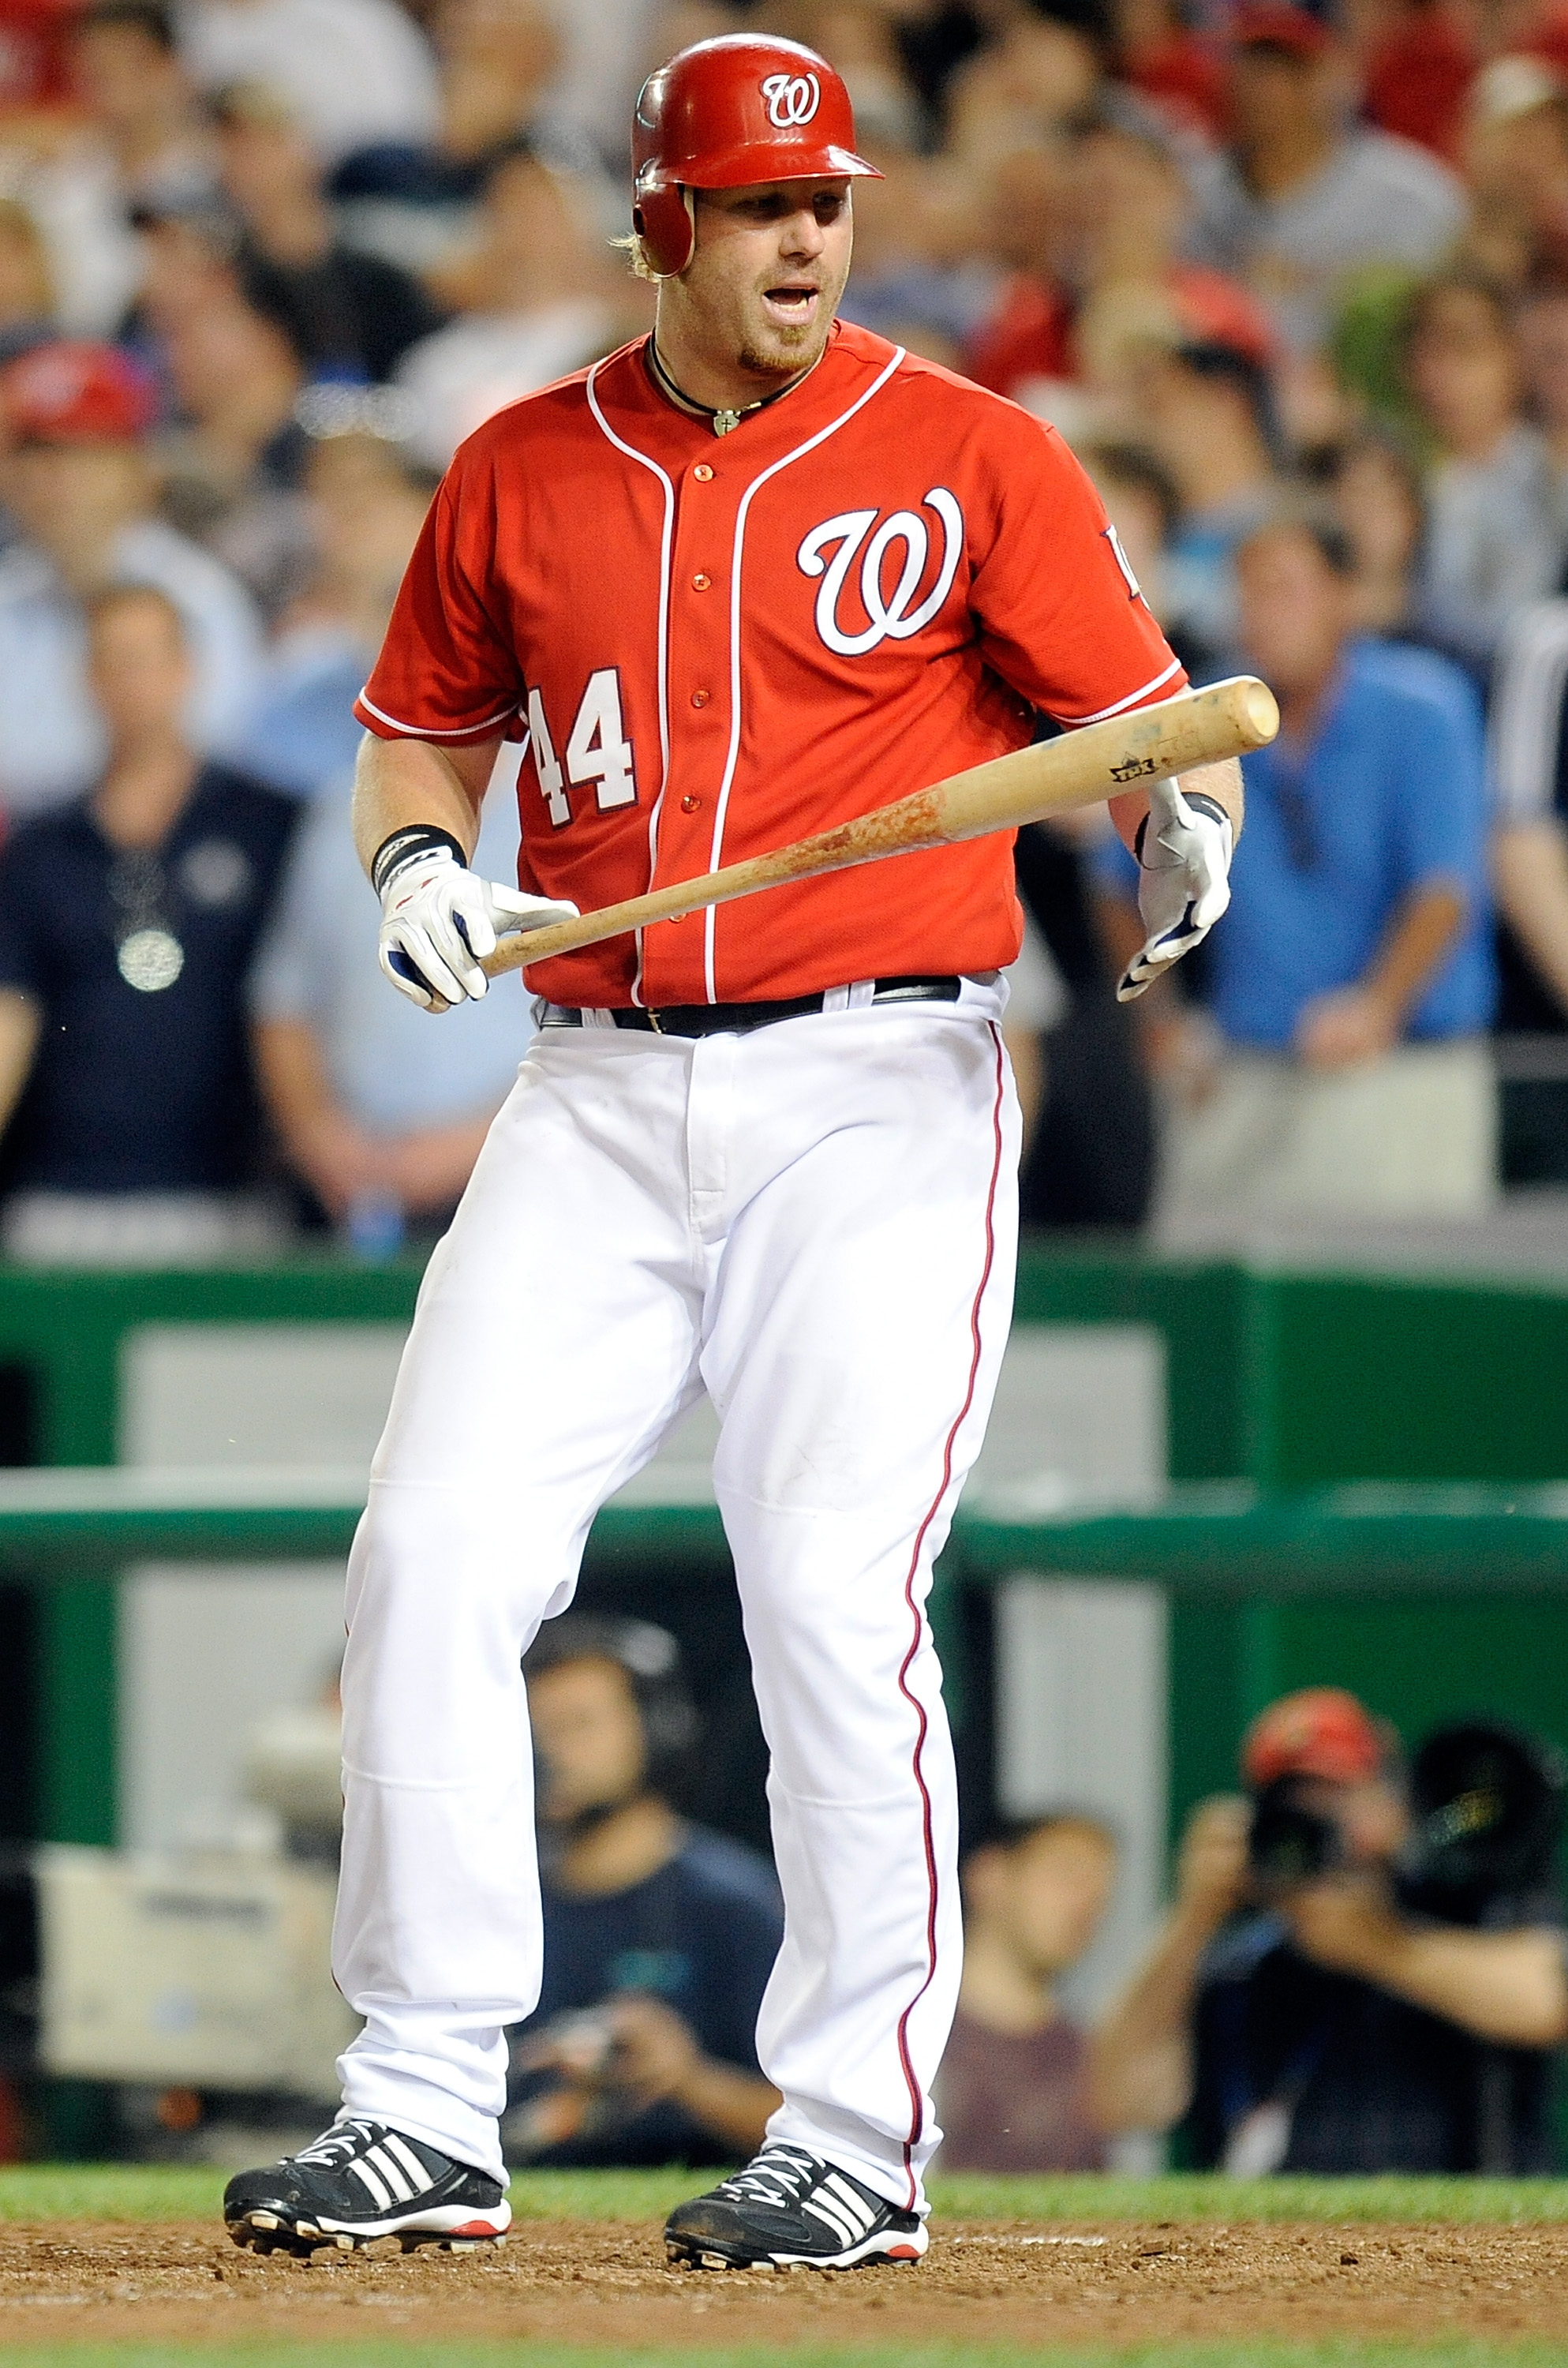 WASHINGTON - JUNE 18:  Adam Dunn #44 of the Washington Nationals reacts after striking out to end the ninth inning against the Chicago White Sox at Nationals Park on June 18, 2010 in Washington, DC.  (Photo by Greg Fiume/Getty Images)